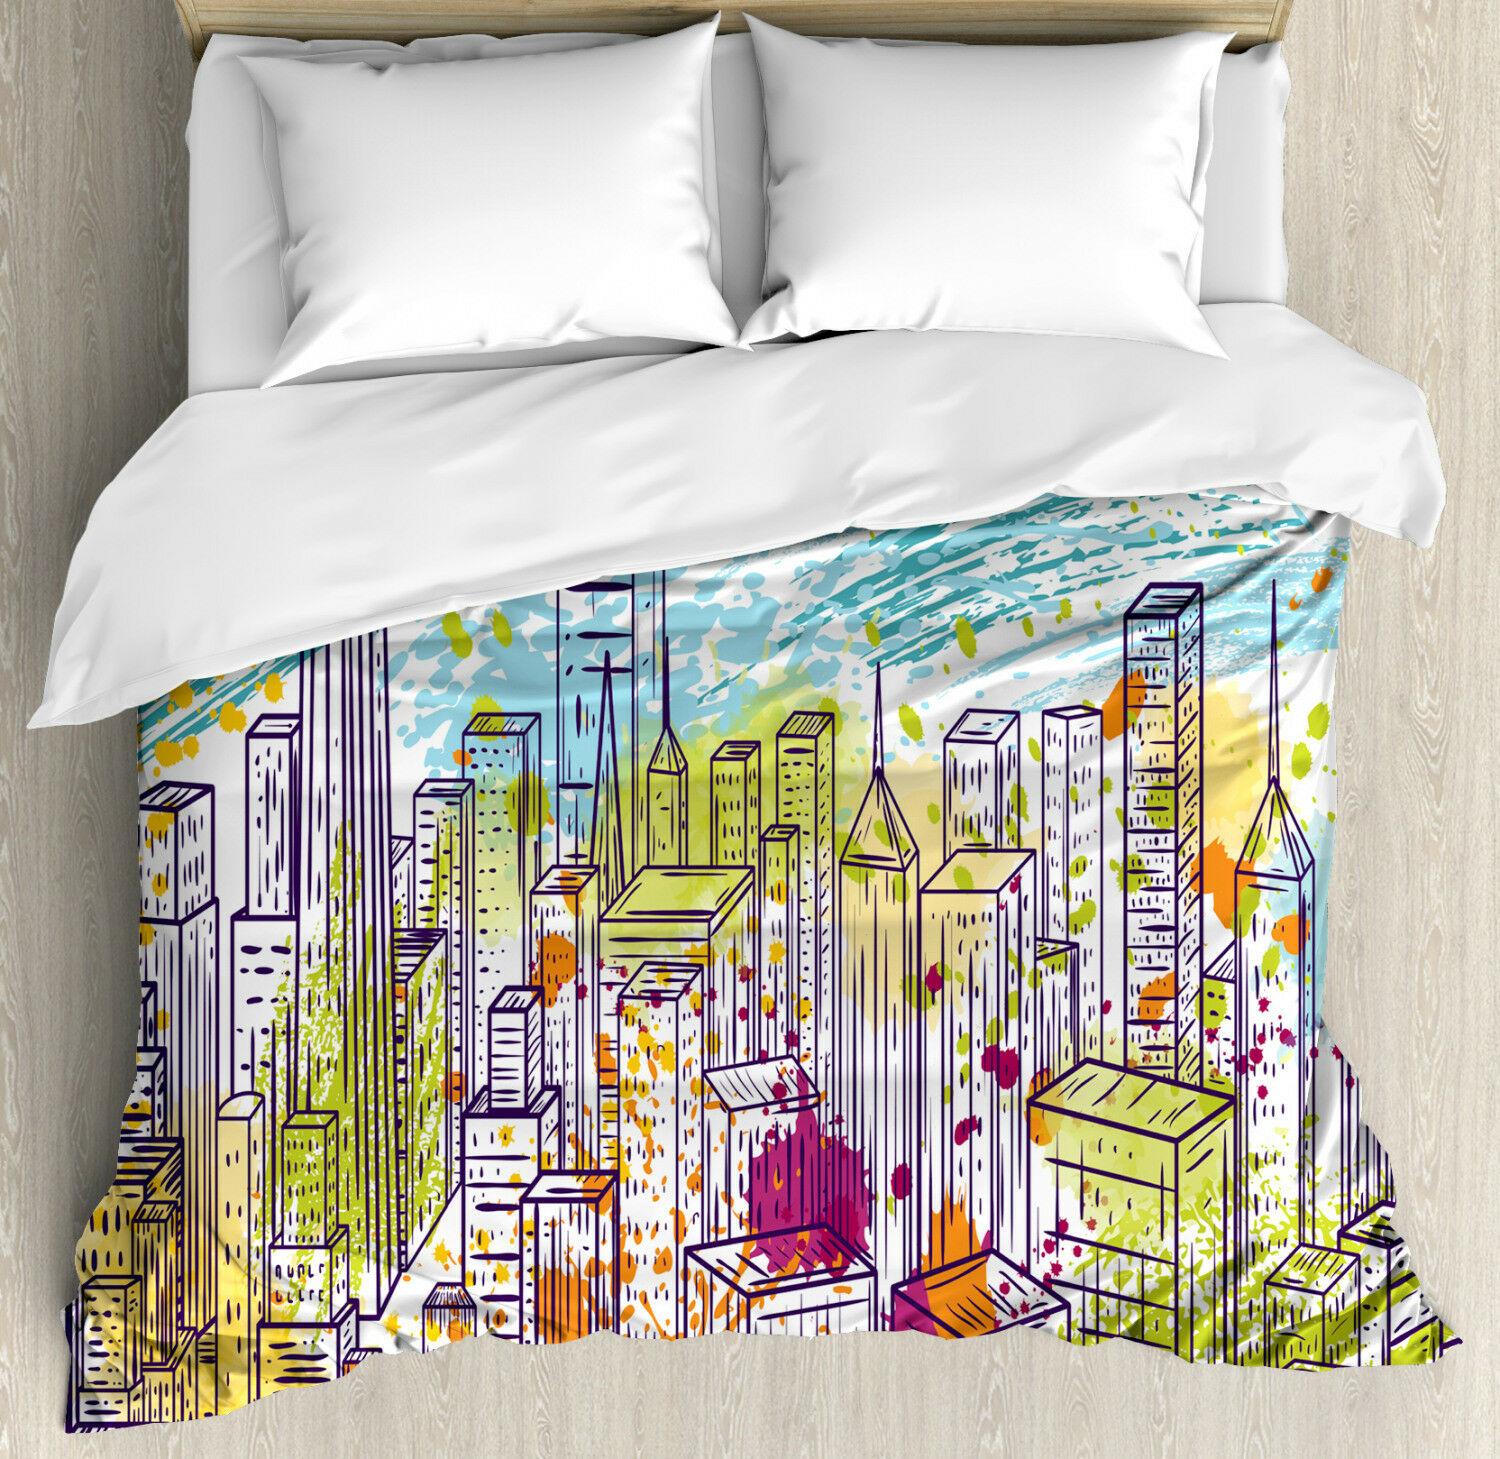 New York Duvet Cover Set with Pillow Shams Landscape Skyscrapes Print